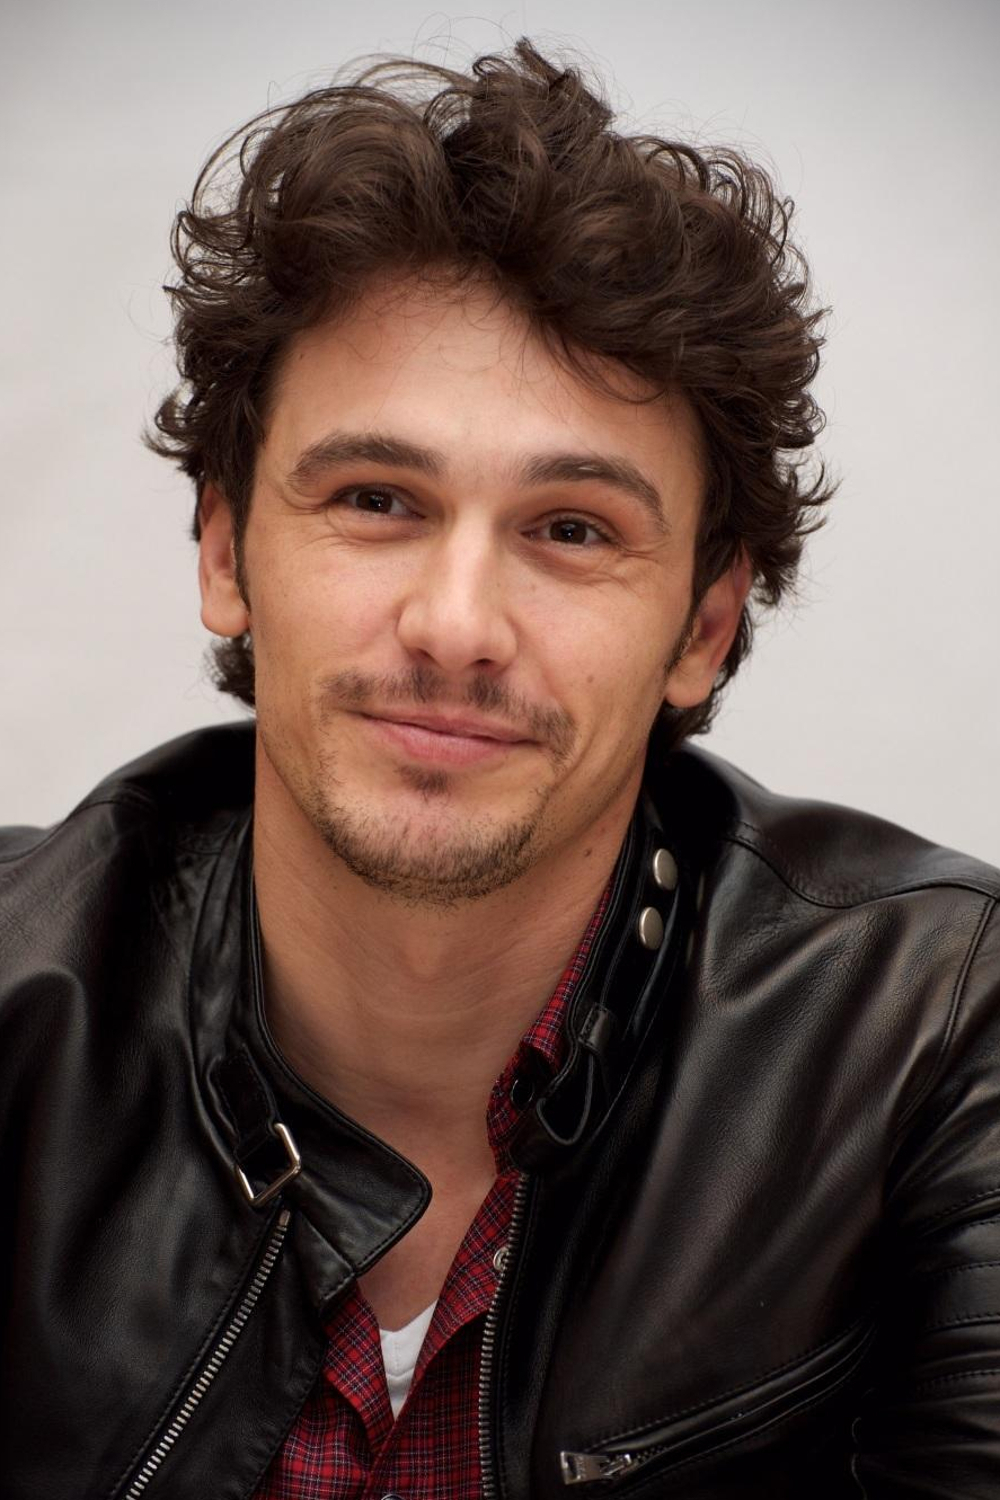 James Franco unexpectedly annihilates professor's pro-choice moral status argument